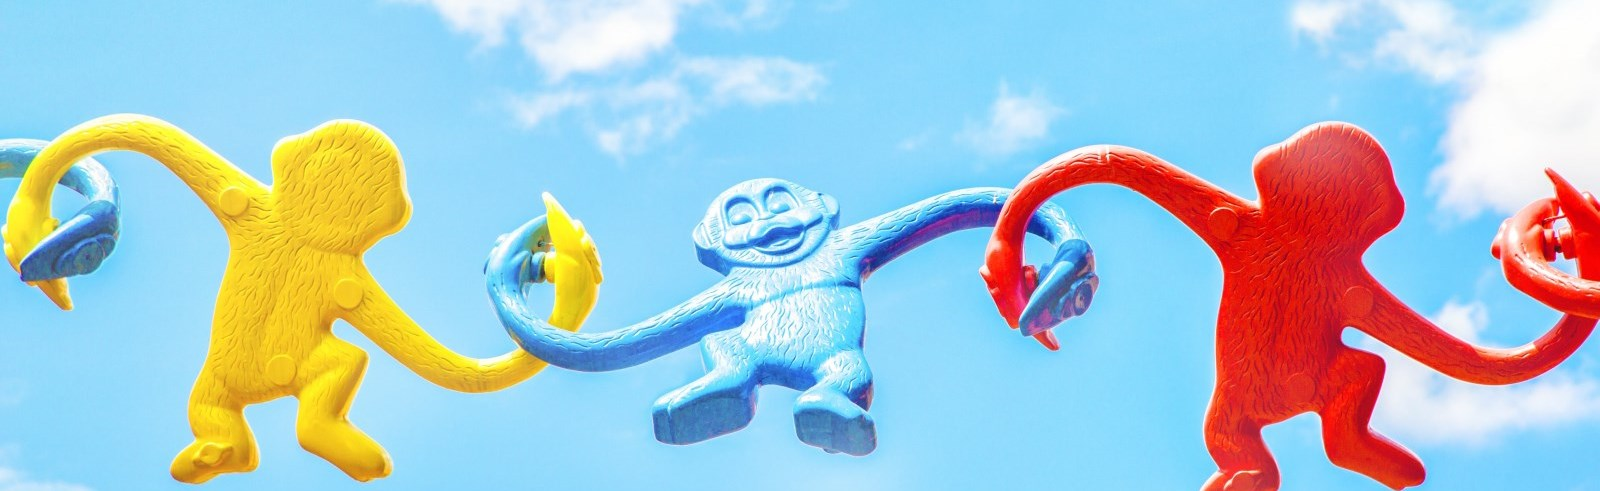 Colourful plastic monkeys linked by their arms with a blue sky background